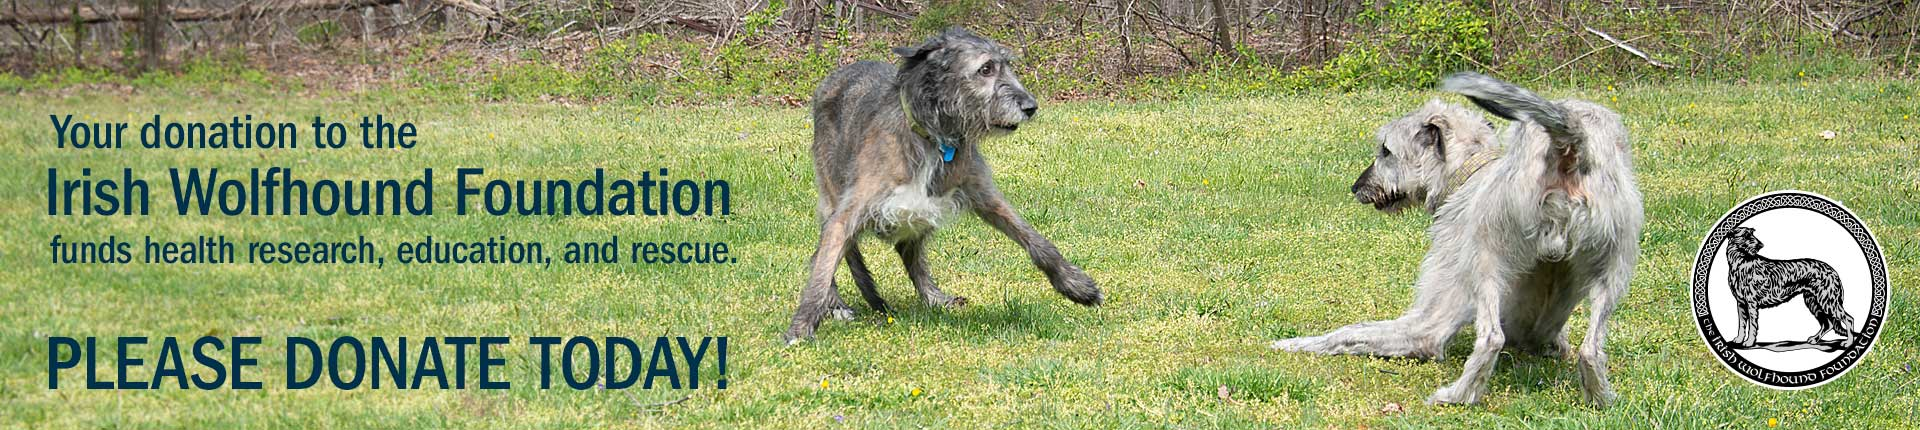 Your donation to the Irish Wolfhound Foundation                  funds health research, education, and rescue. Please donate today!